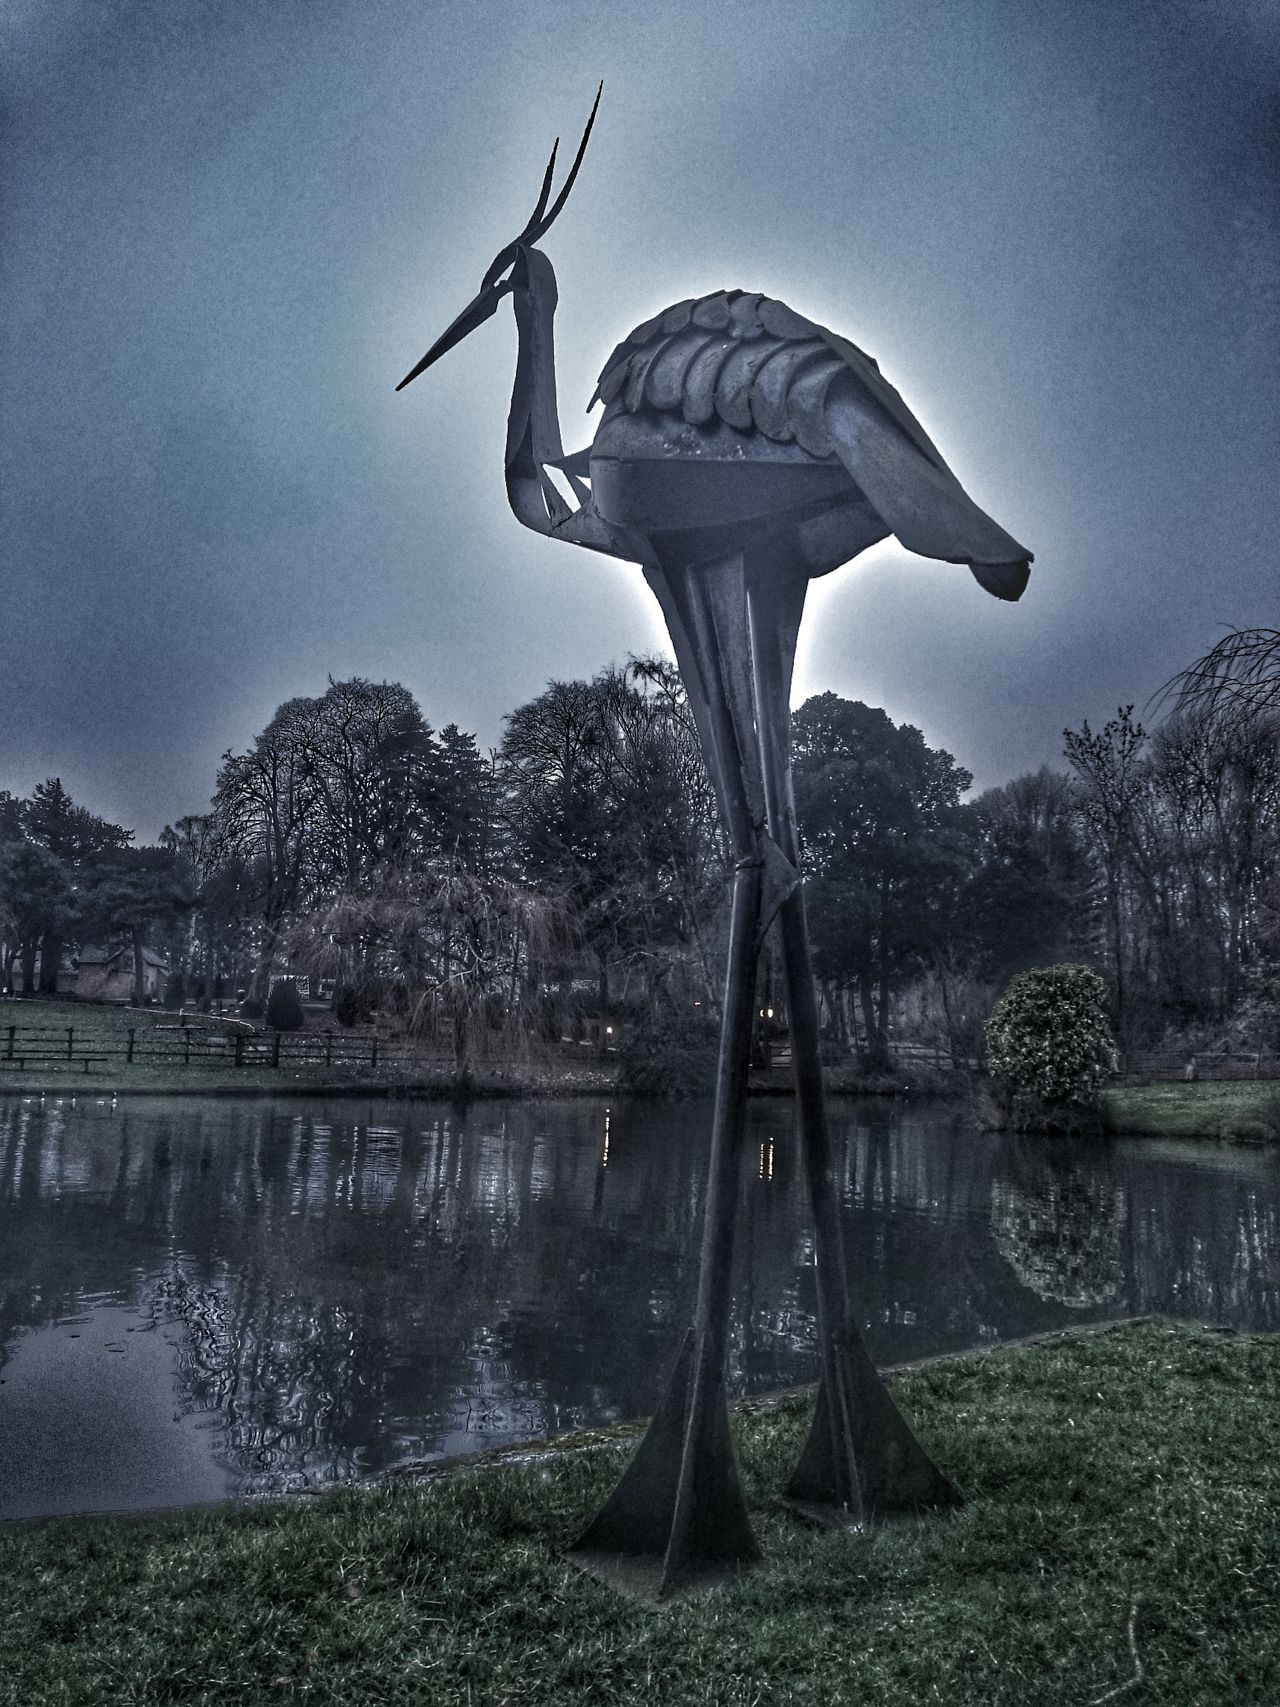 Animal Themes Bird Water Sky Man Made Object Sculpture Mastery Welding Work Statue Heron Bird Sculpture Iron - Metal At The Waters' Edge Outdoors No People Hdr_Collection HDR Collection Hdr Edit Hdrphotography Hdr_lovers Hdr_gallery Hdr_pics Hdroftheday